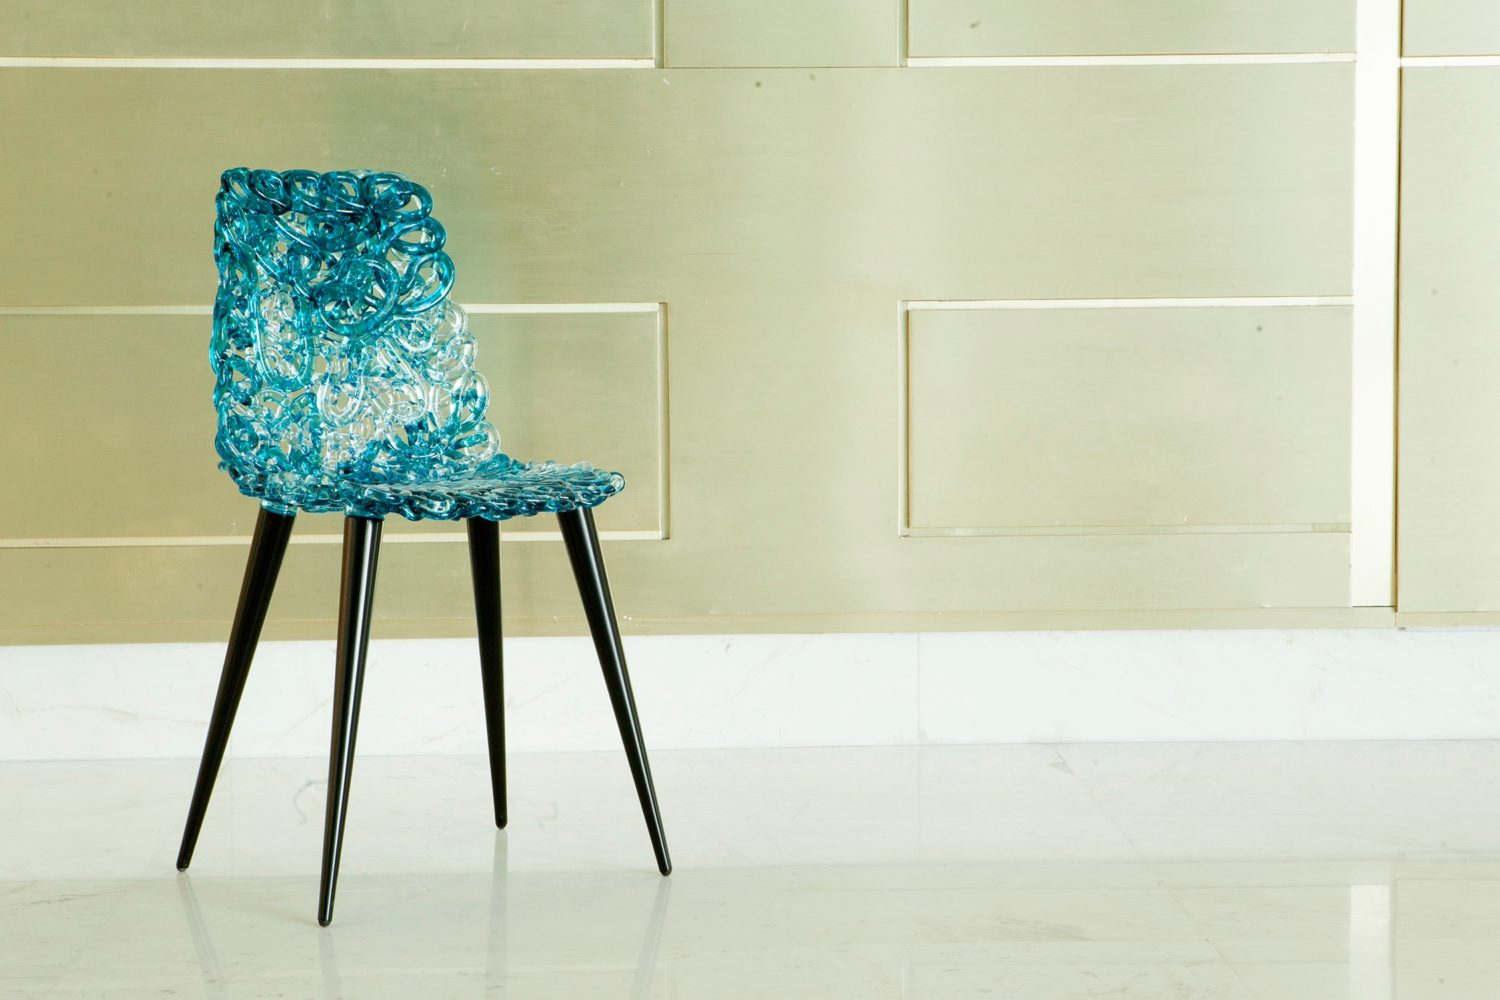 Photograph of a designer chair in the Kuwait Cultural Centre